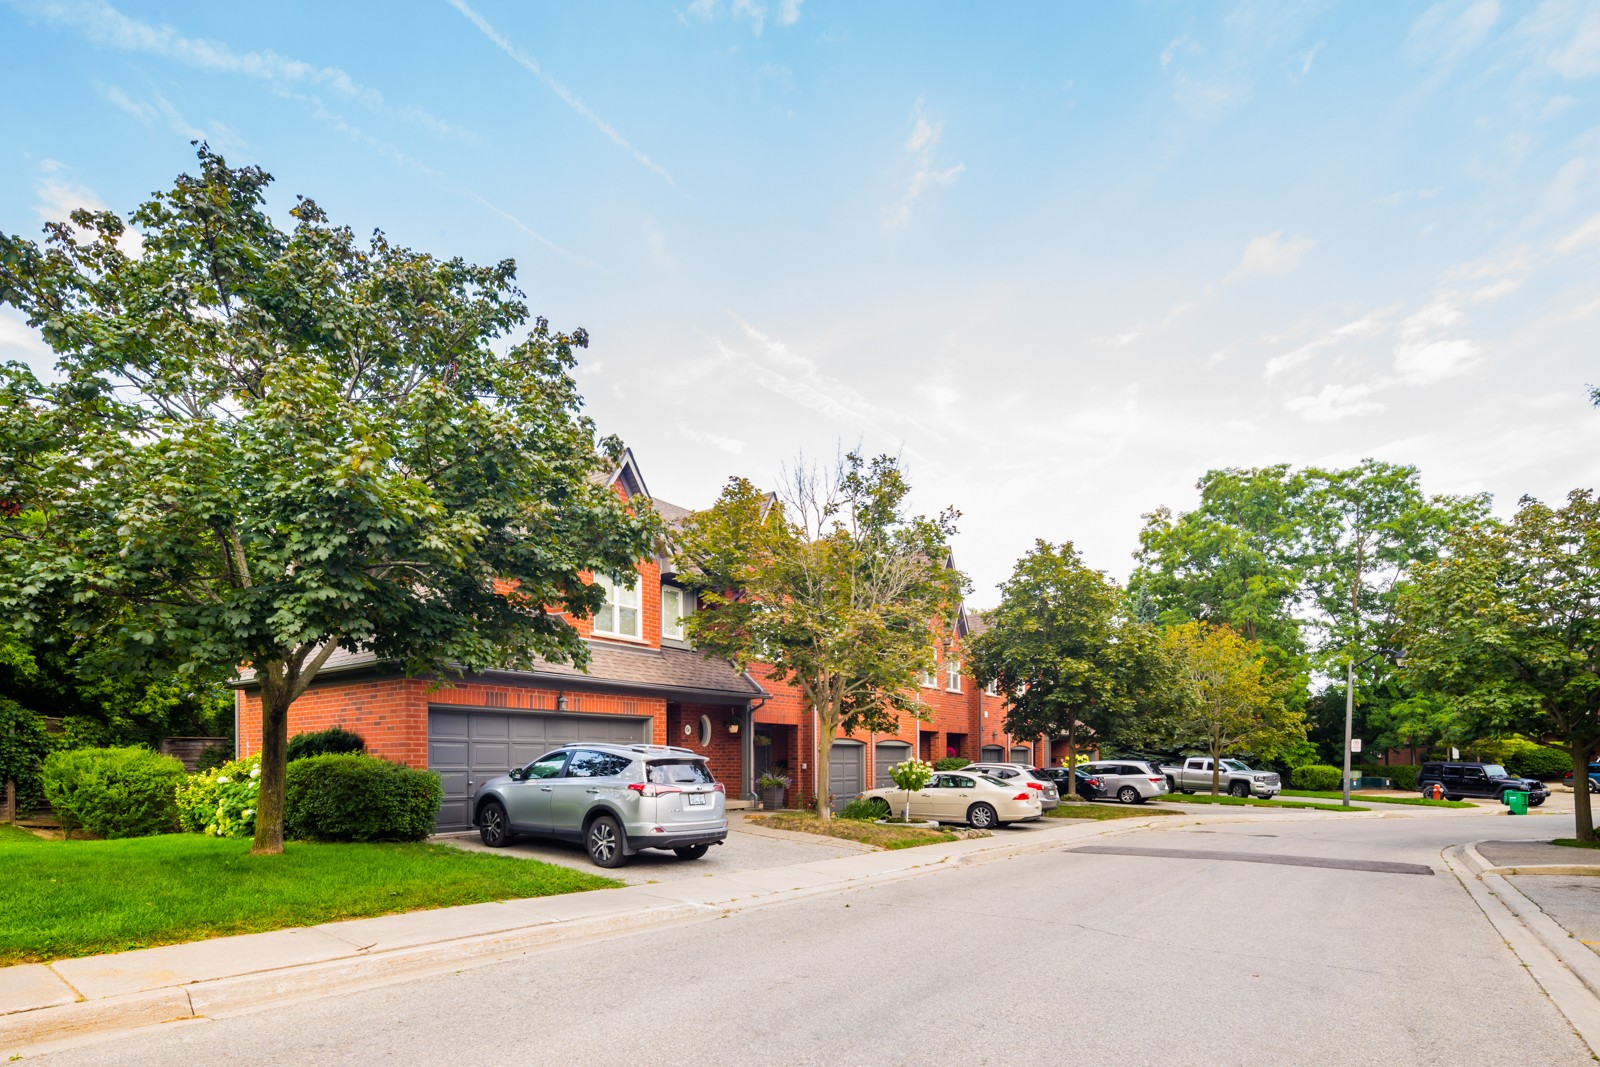 1064 Queen Street West Townhouses at 1064 Queen St W, Mississauga 1